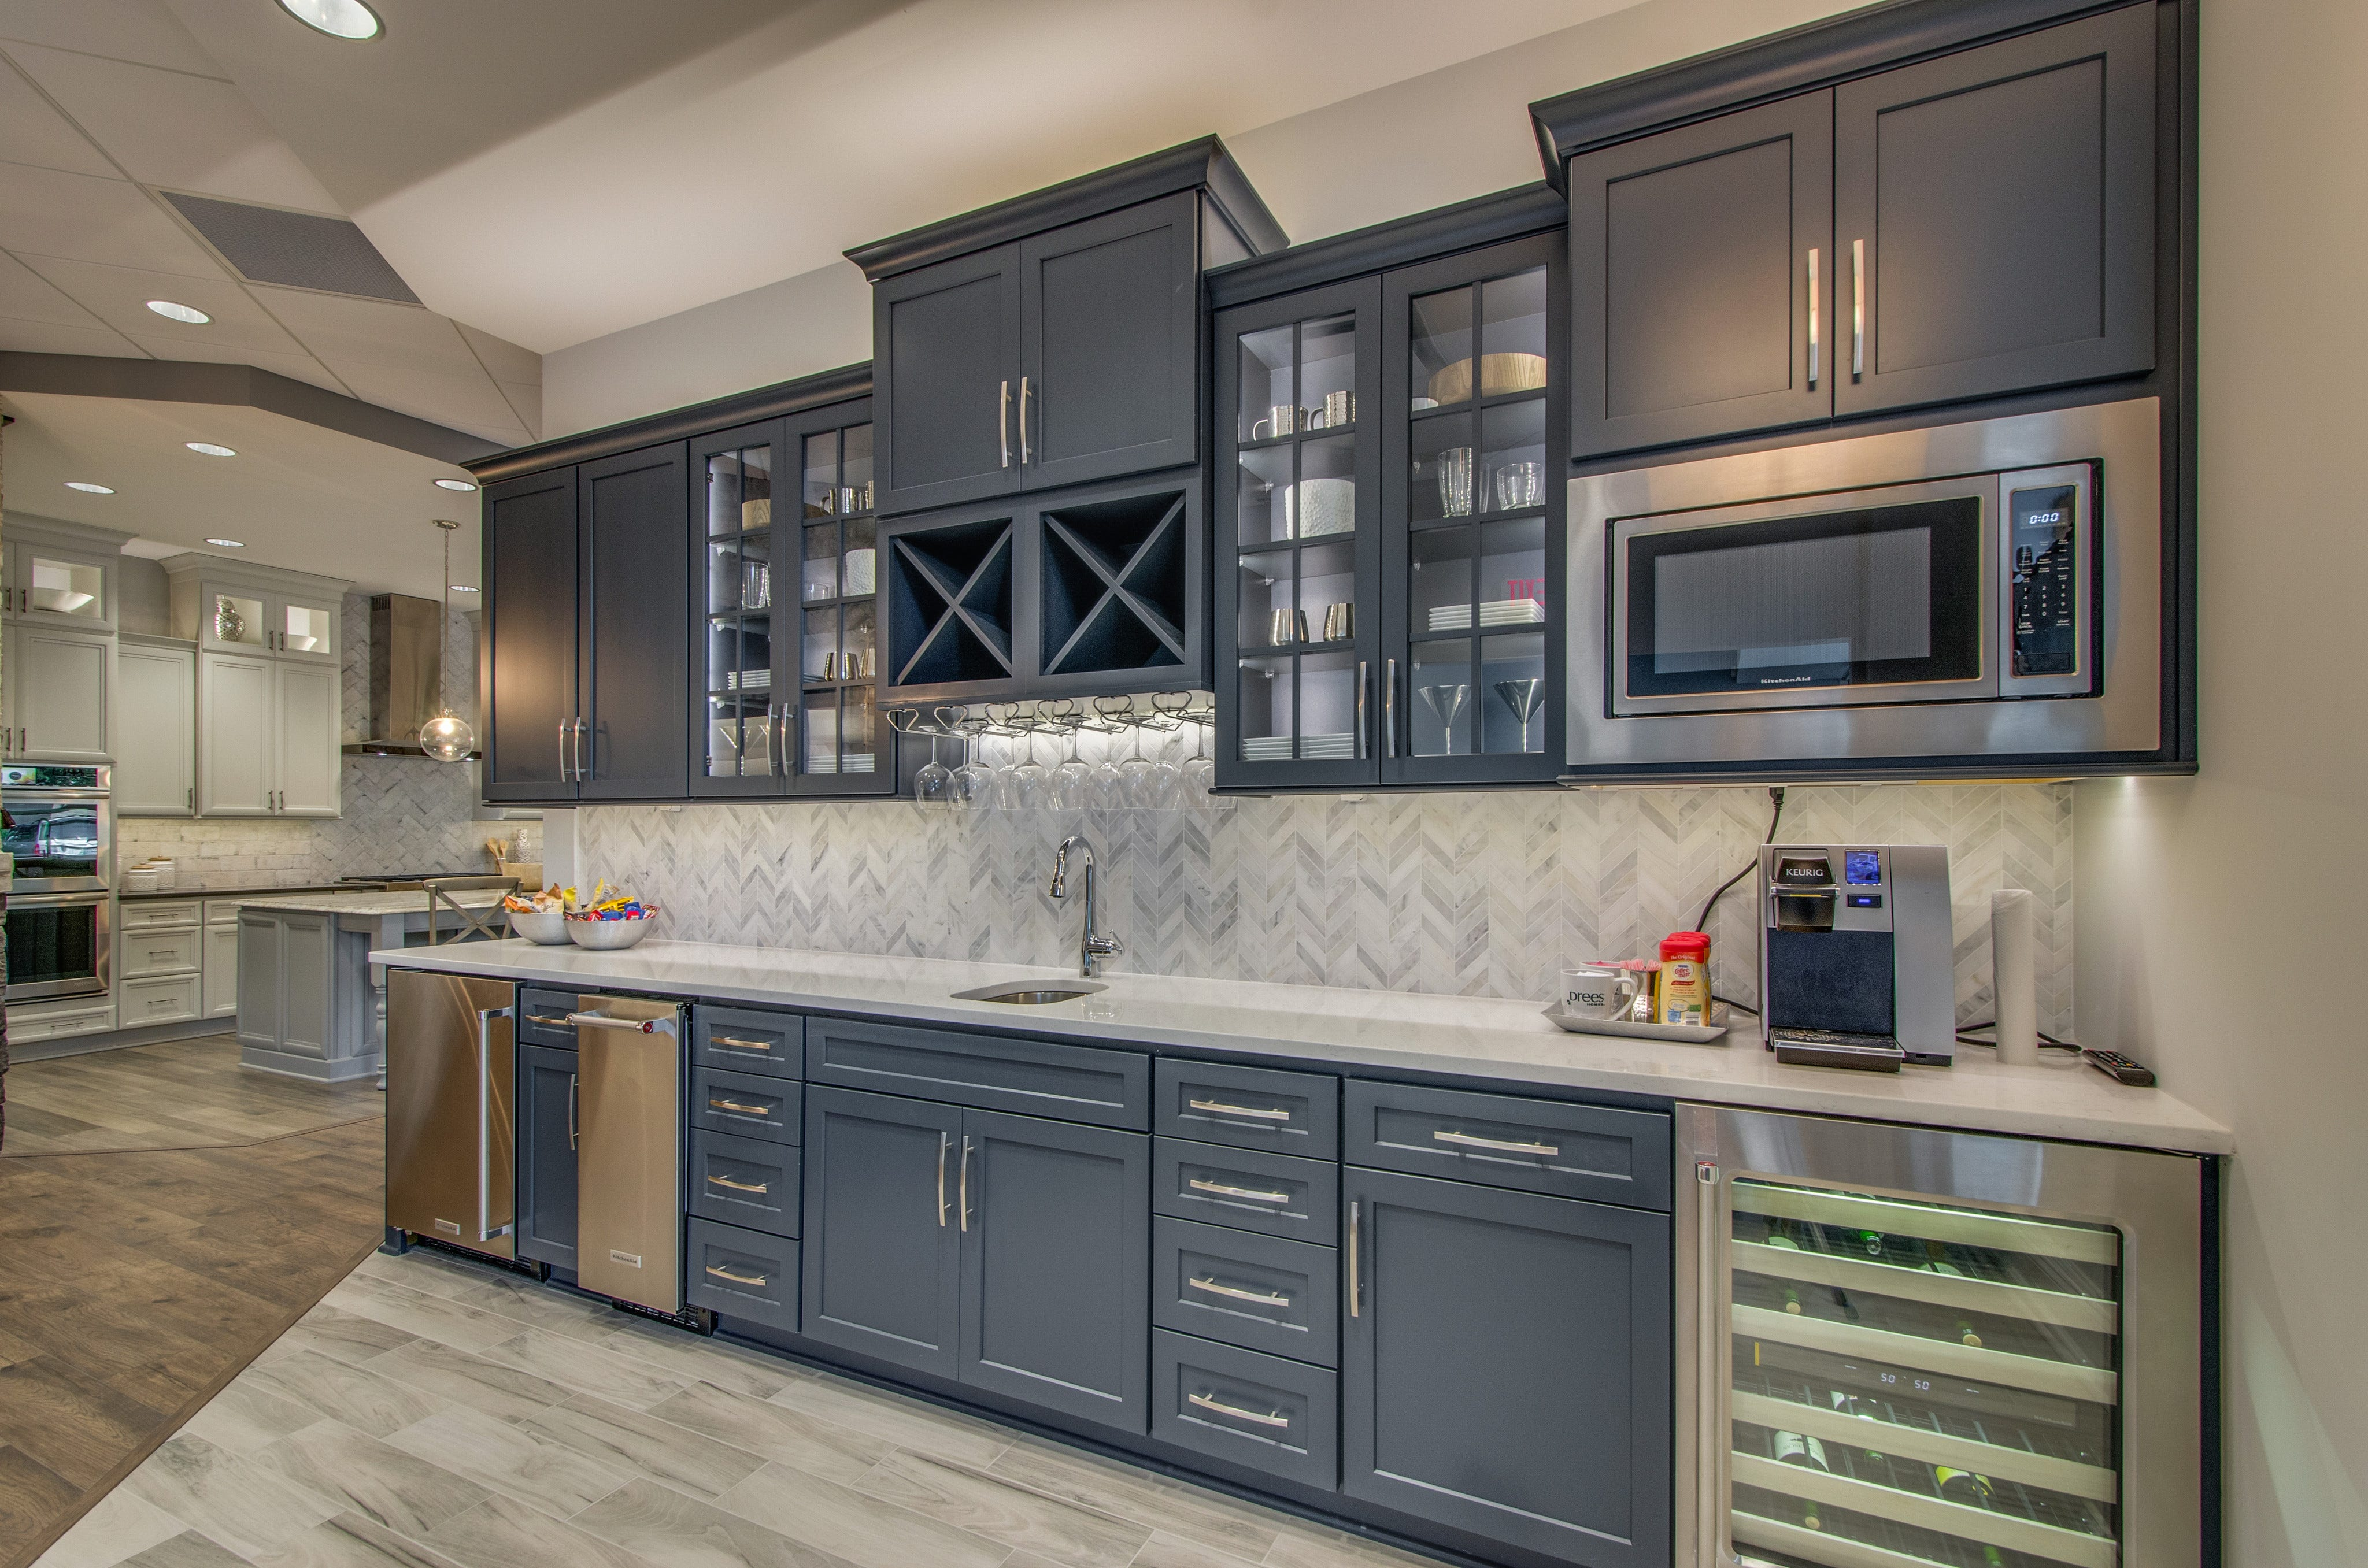 Design Centers Inspire Home Buyers To Make Bold Choices